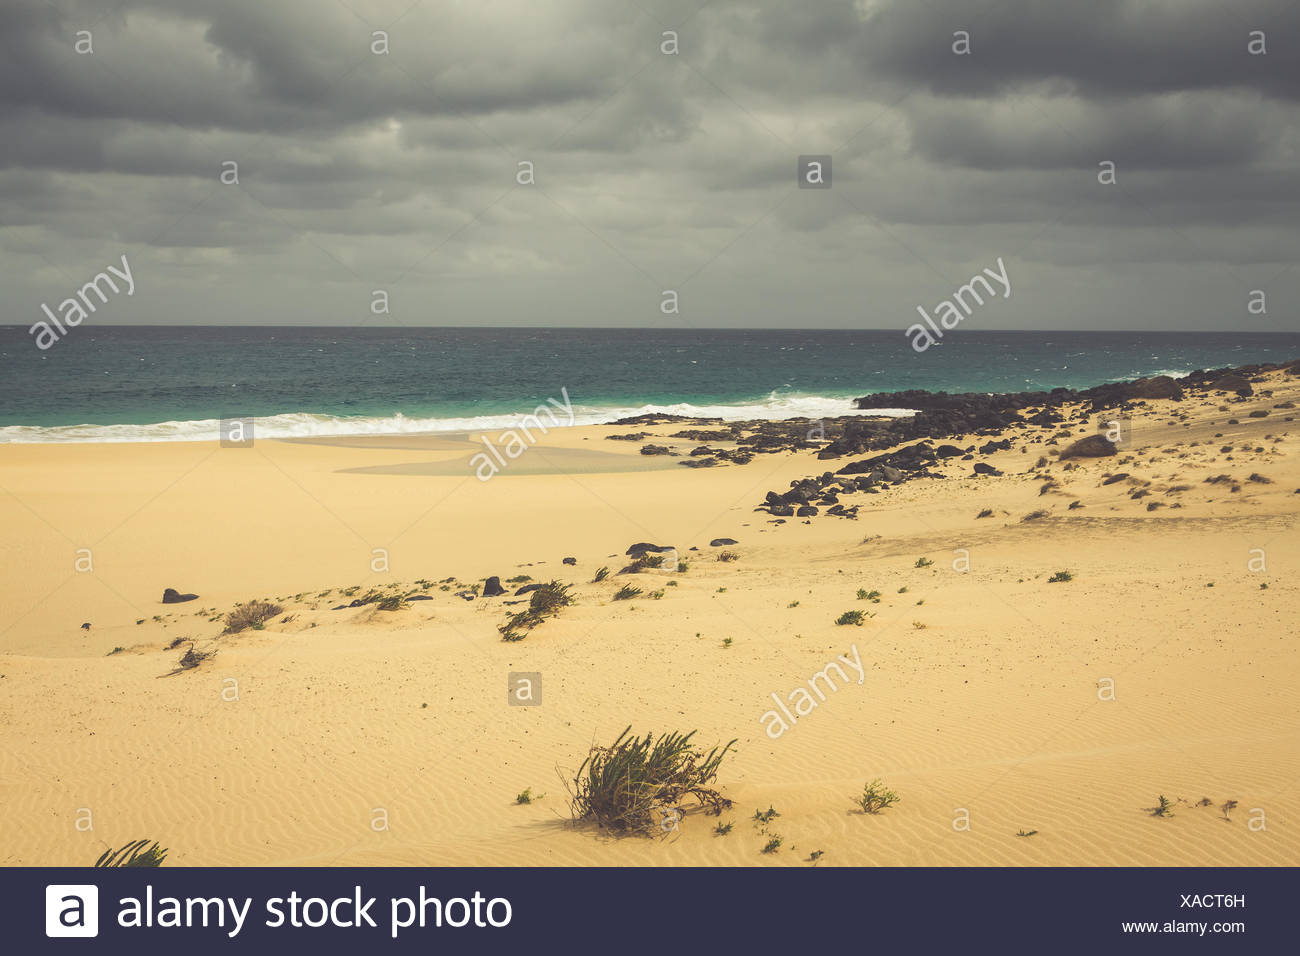 A view of Playa de Las Conchas, a beautiful beach on La Graciosa, a small island near Lanzarote, Canary Islands, in the middle of the Atlantic Ocean. - Stock Image